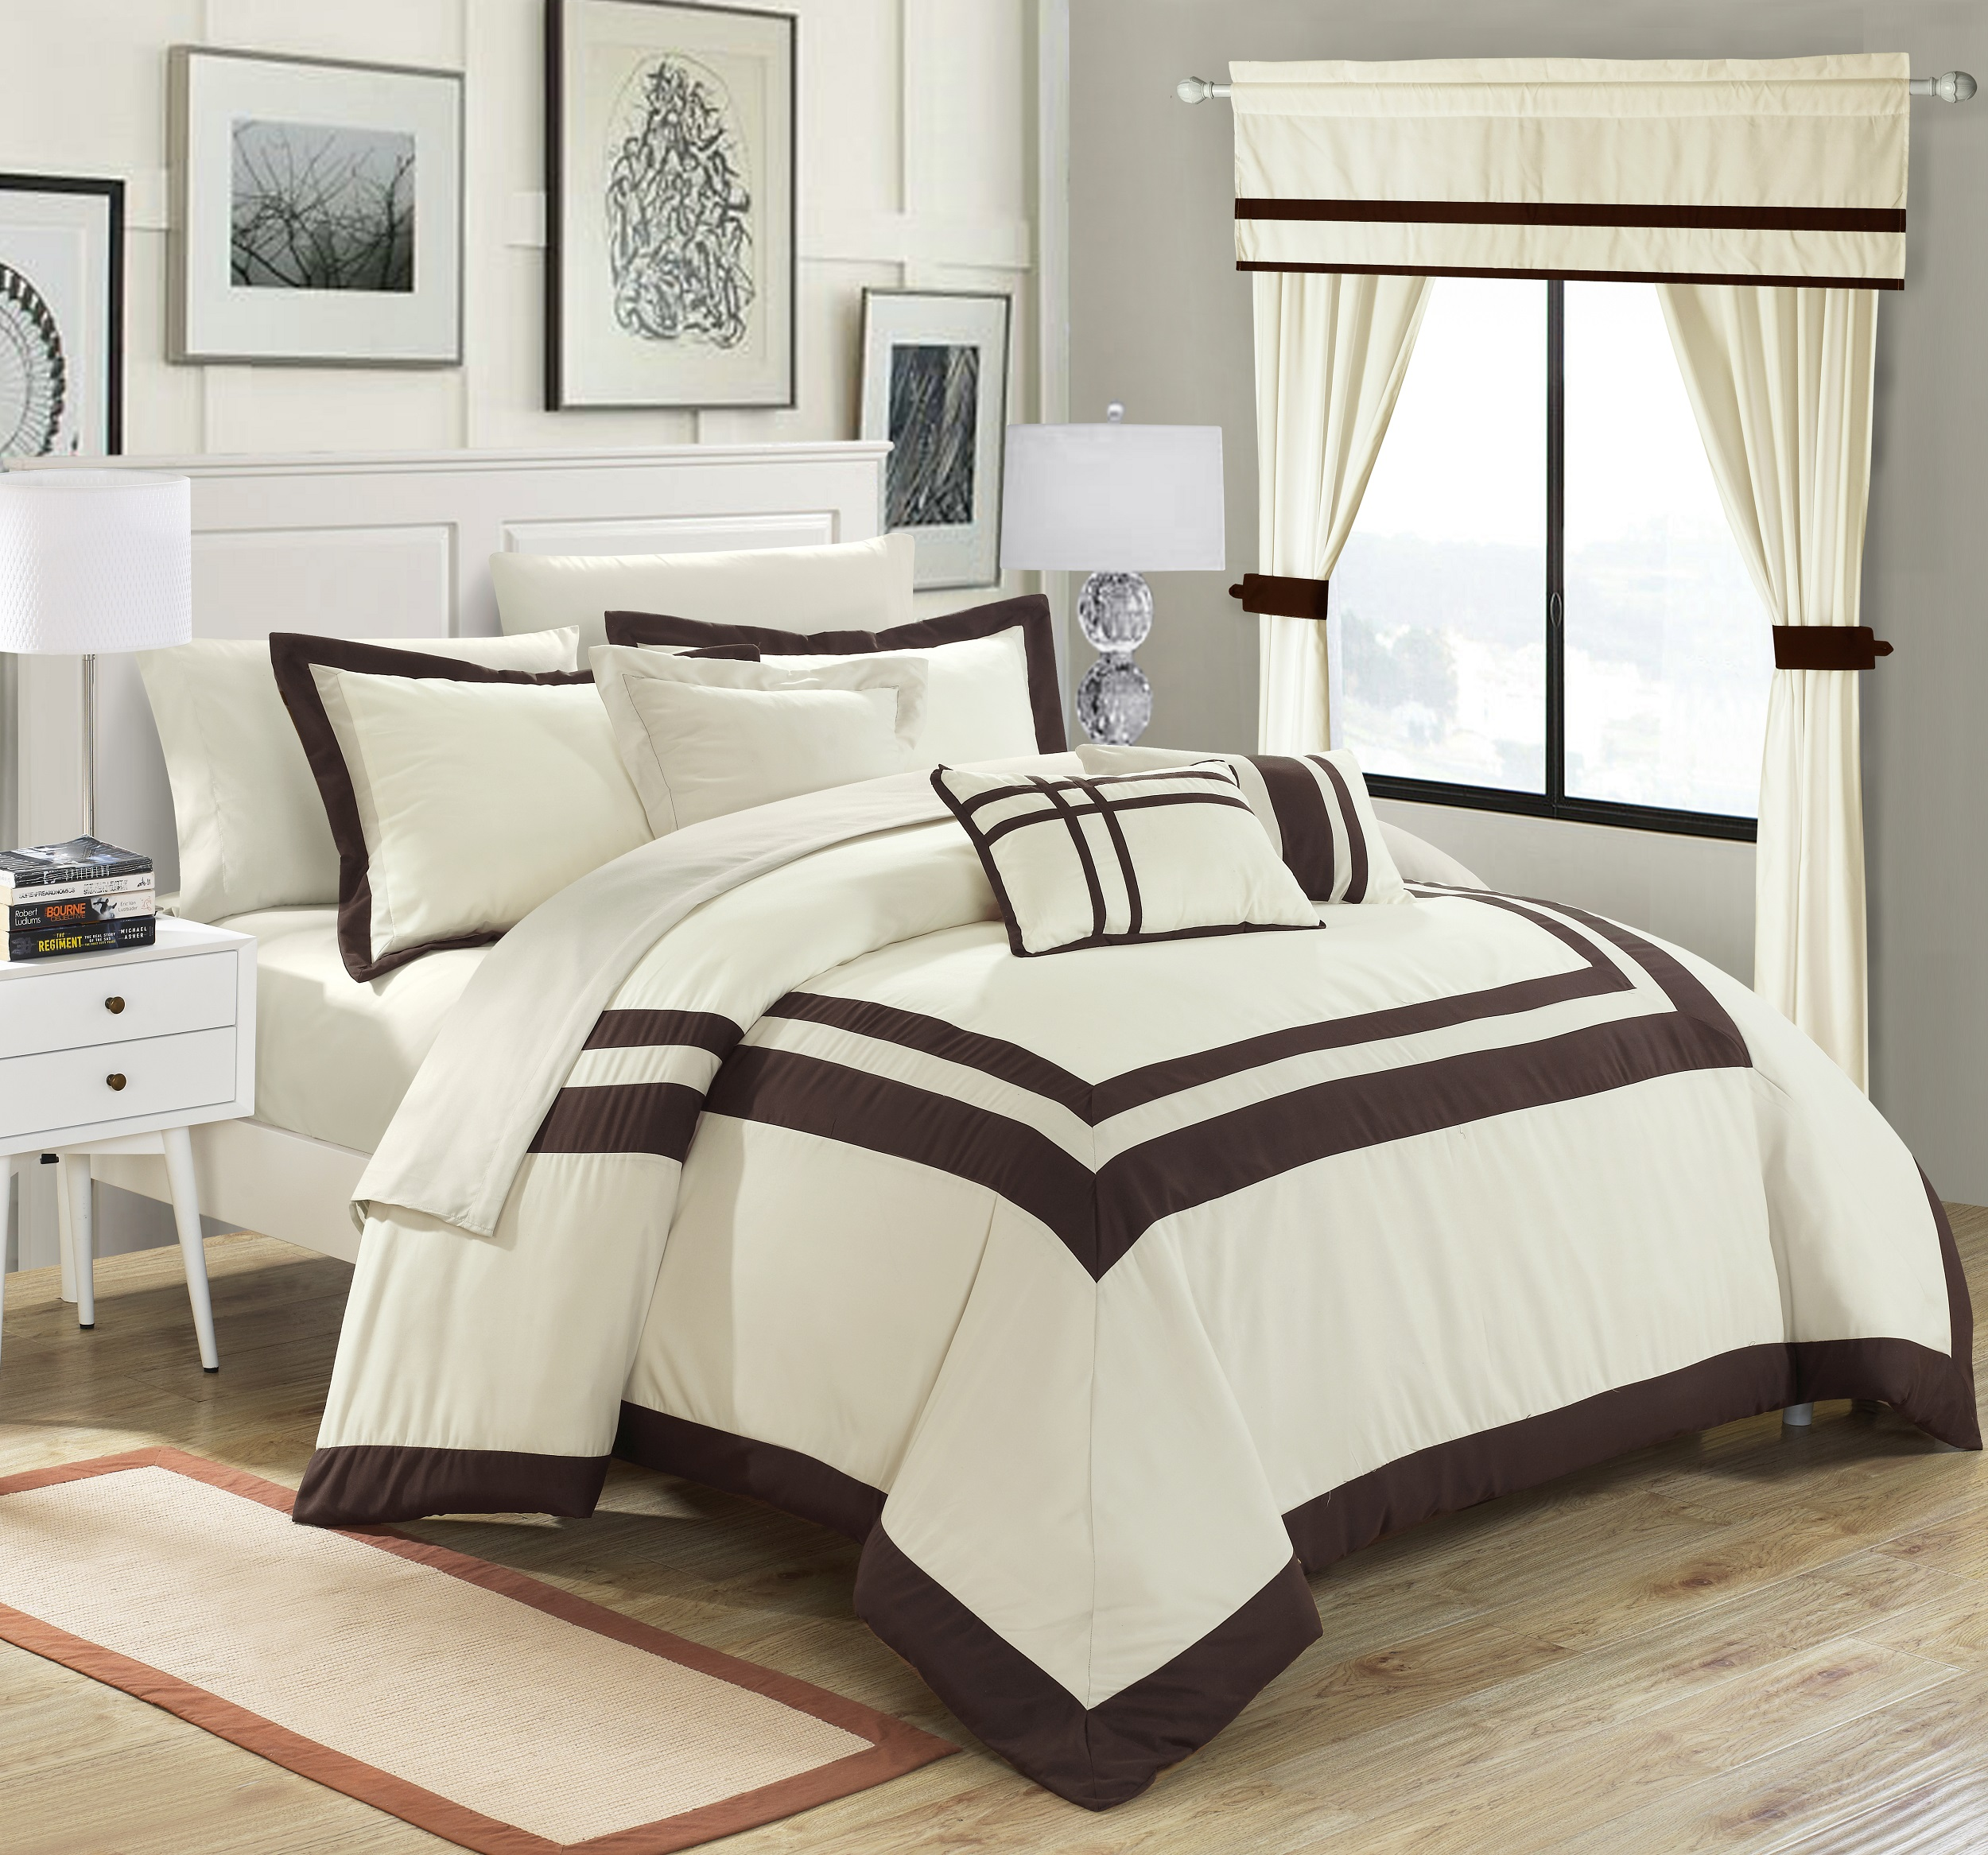 Chic Home 20-Piece Christofle-Pieced Color Blocked Complete Master Bedroom Ensemble Includes Comforter Set, sheet set and window treatments. King, Beige